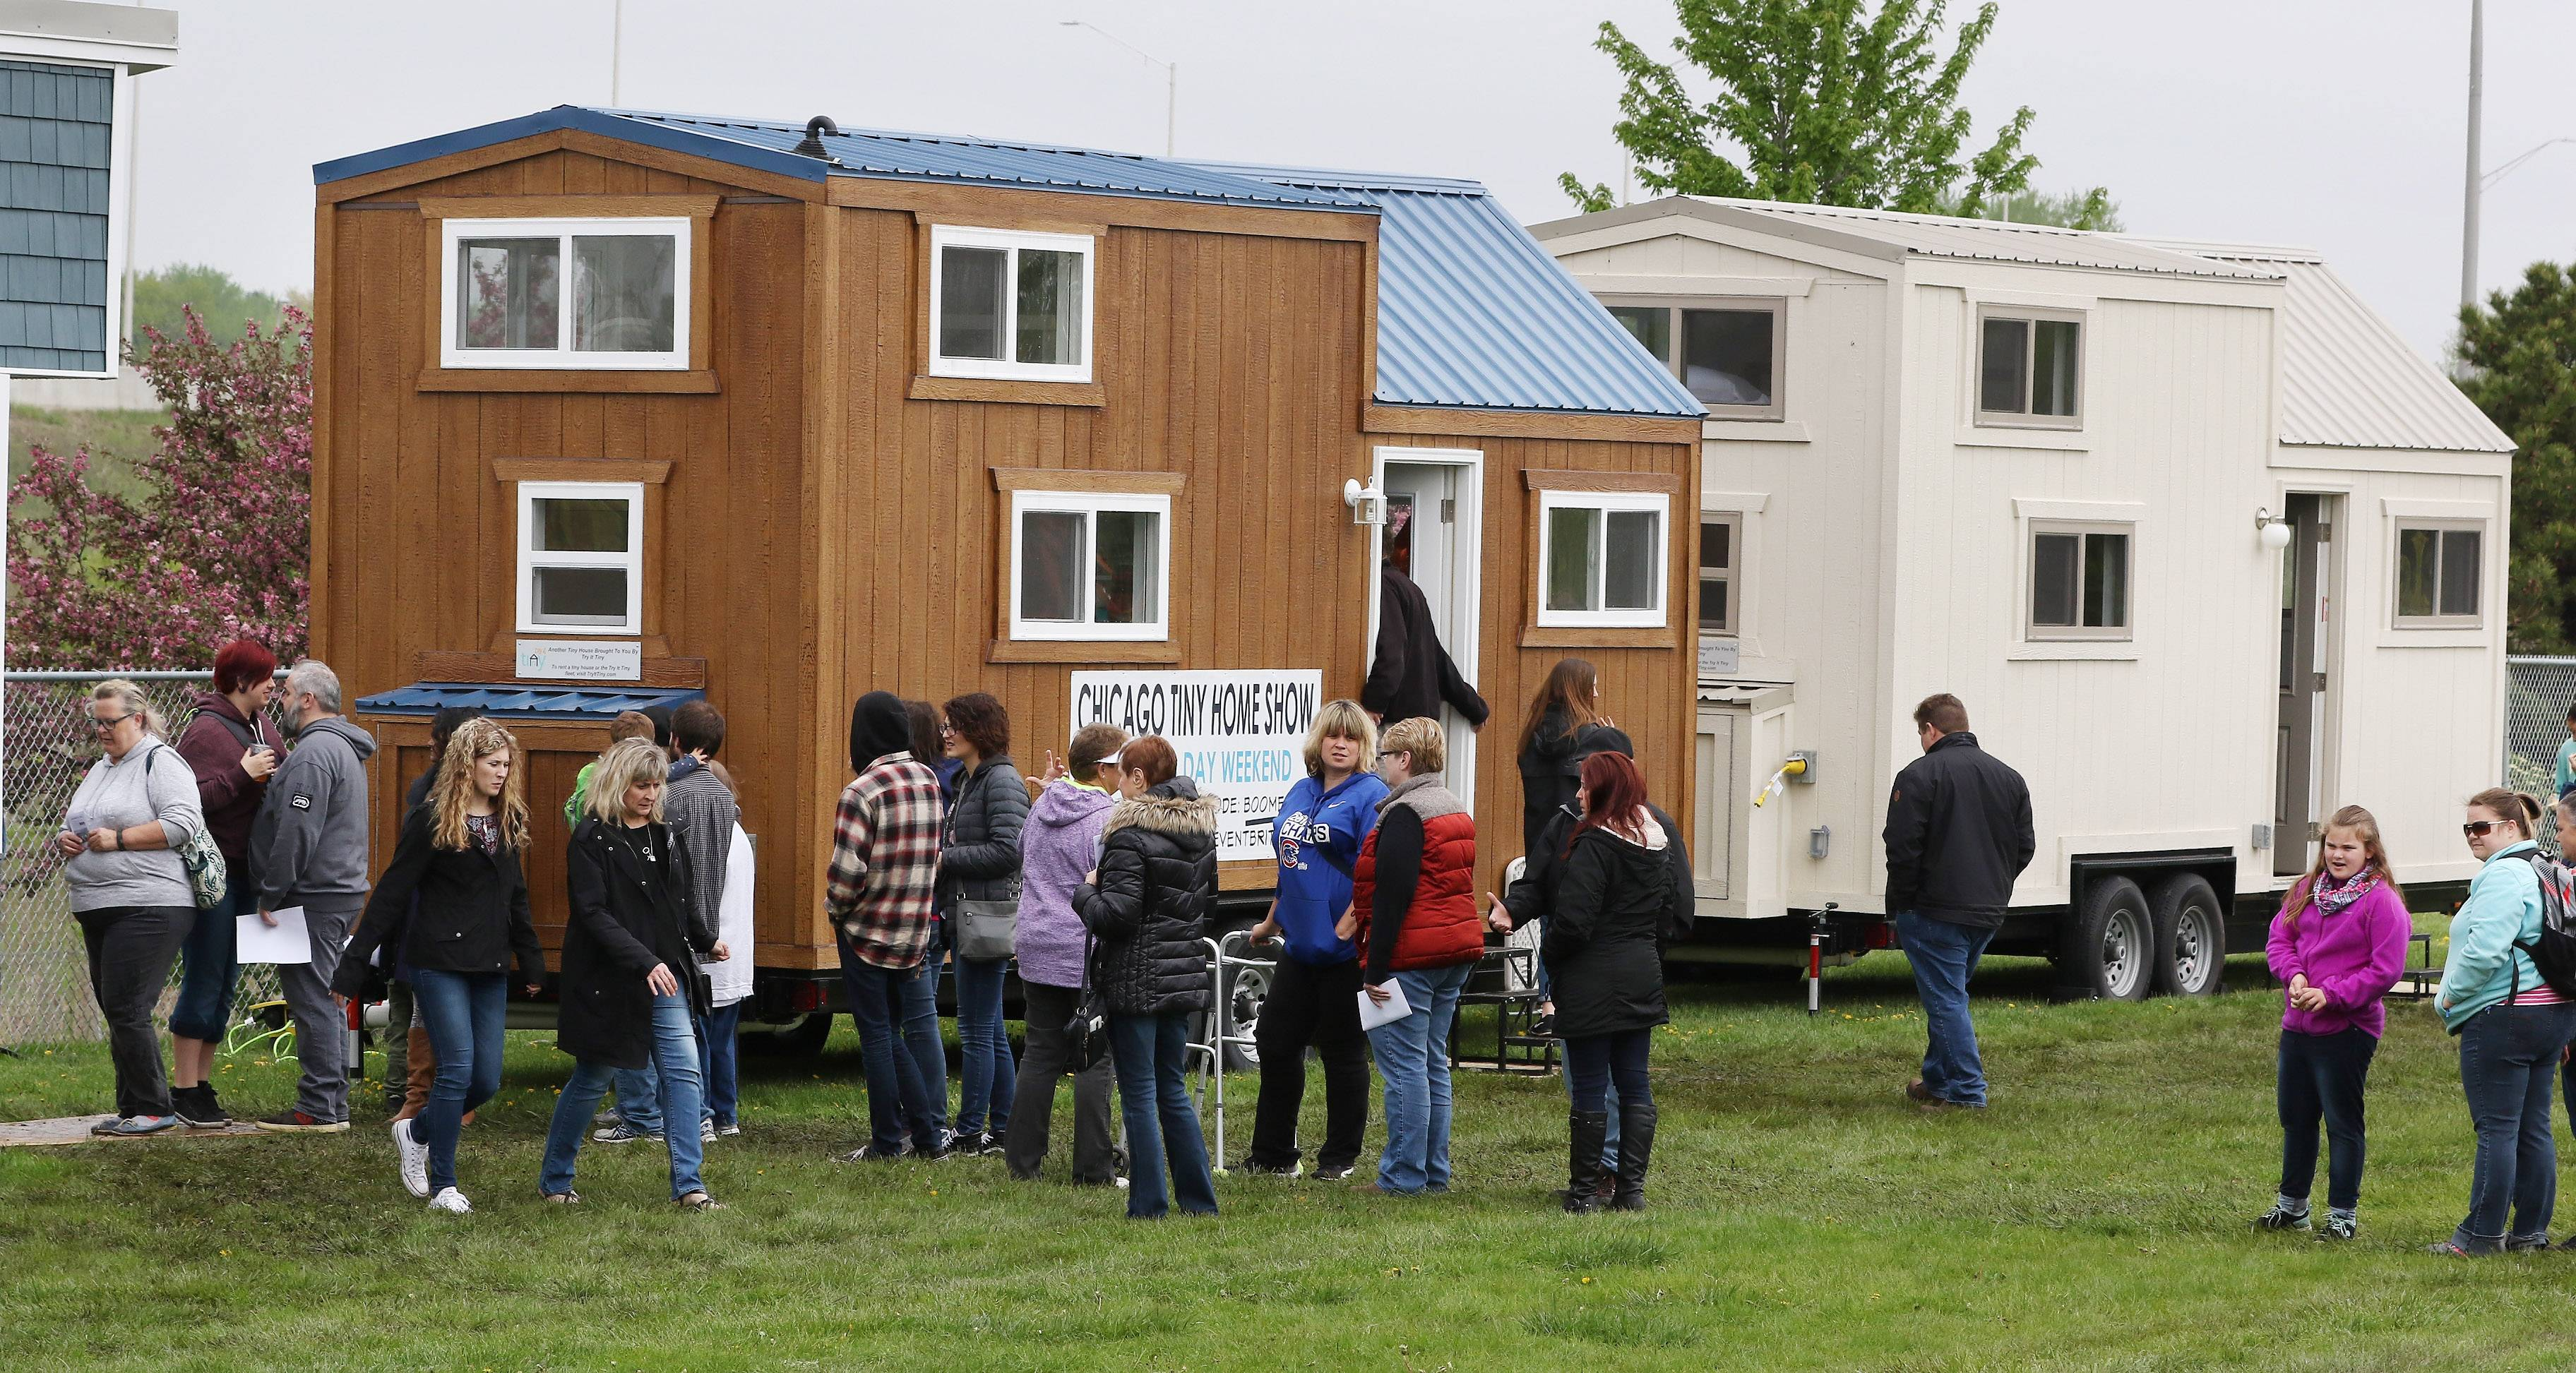 Visitors to the 2018 Chicago Tiny House Show line up Sunday to get inside some of the seven tiny home models on display at Boomers Stadium in Schaumburg.